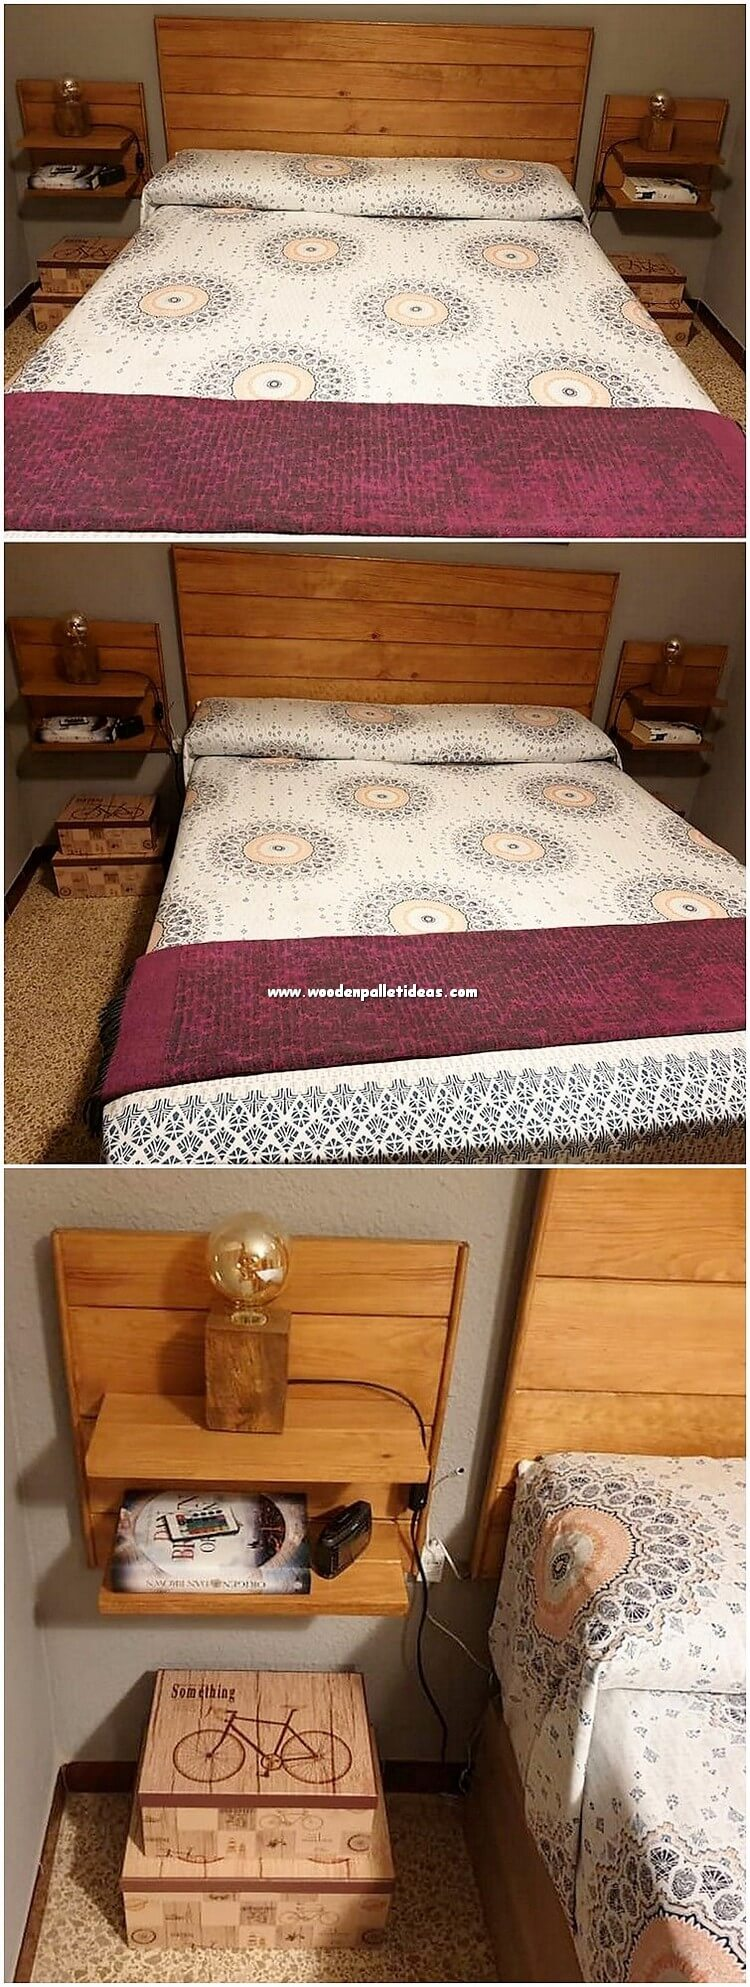 Pallet Bed Headboard with Side Table